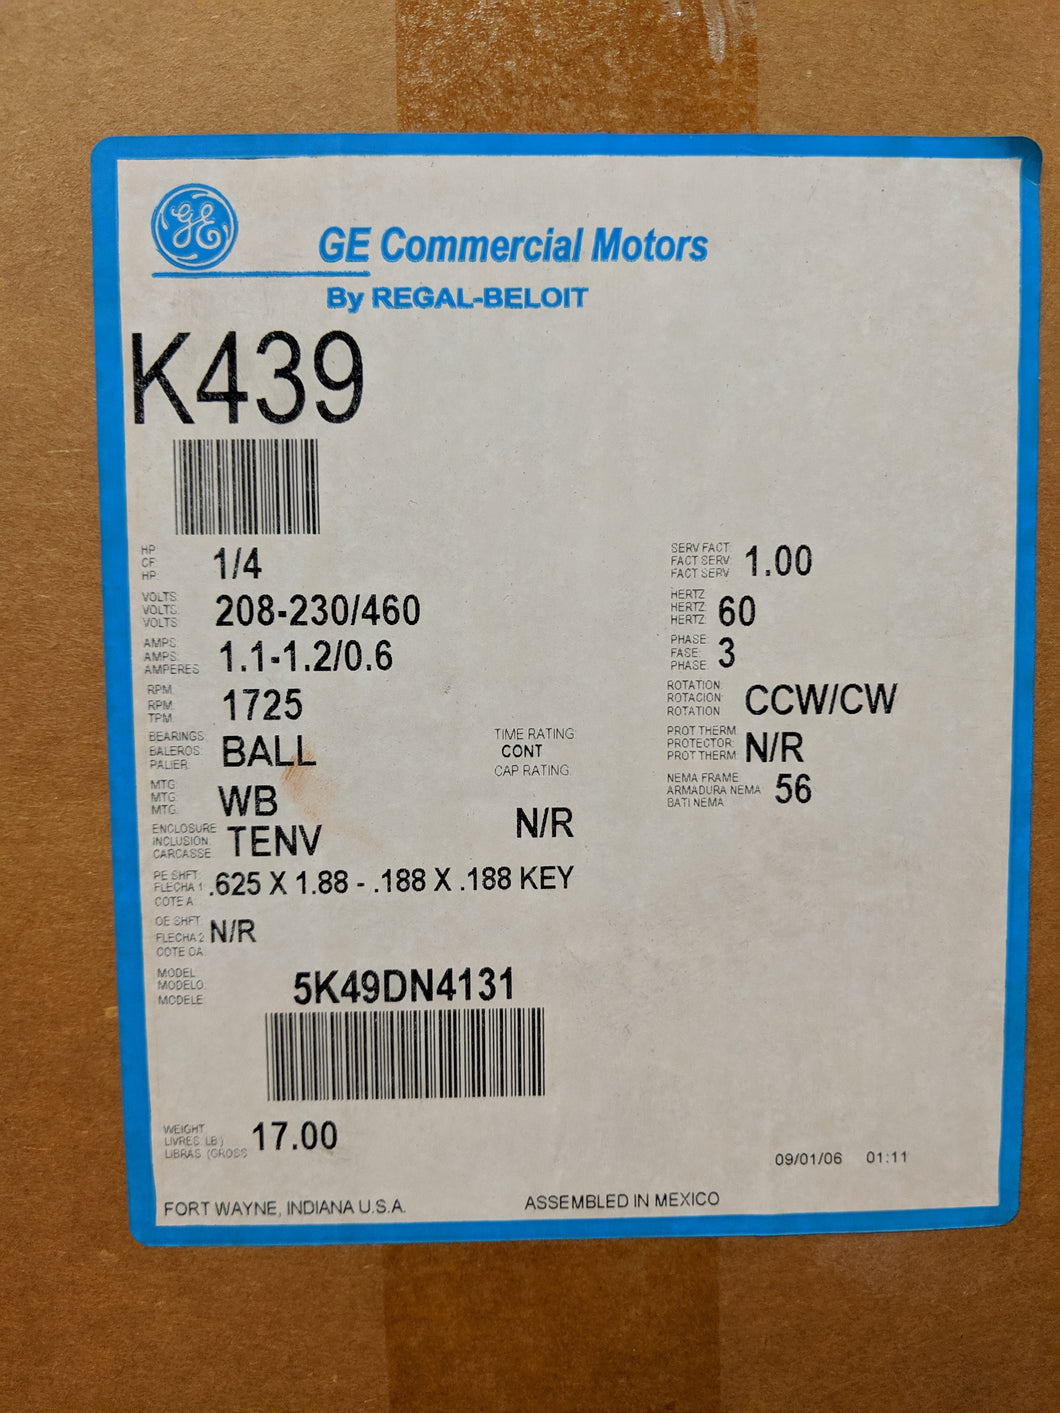 GE K439, 1/4 HP, 208-230/460 Volts, 5K49DN4131